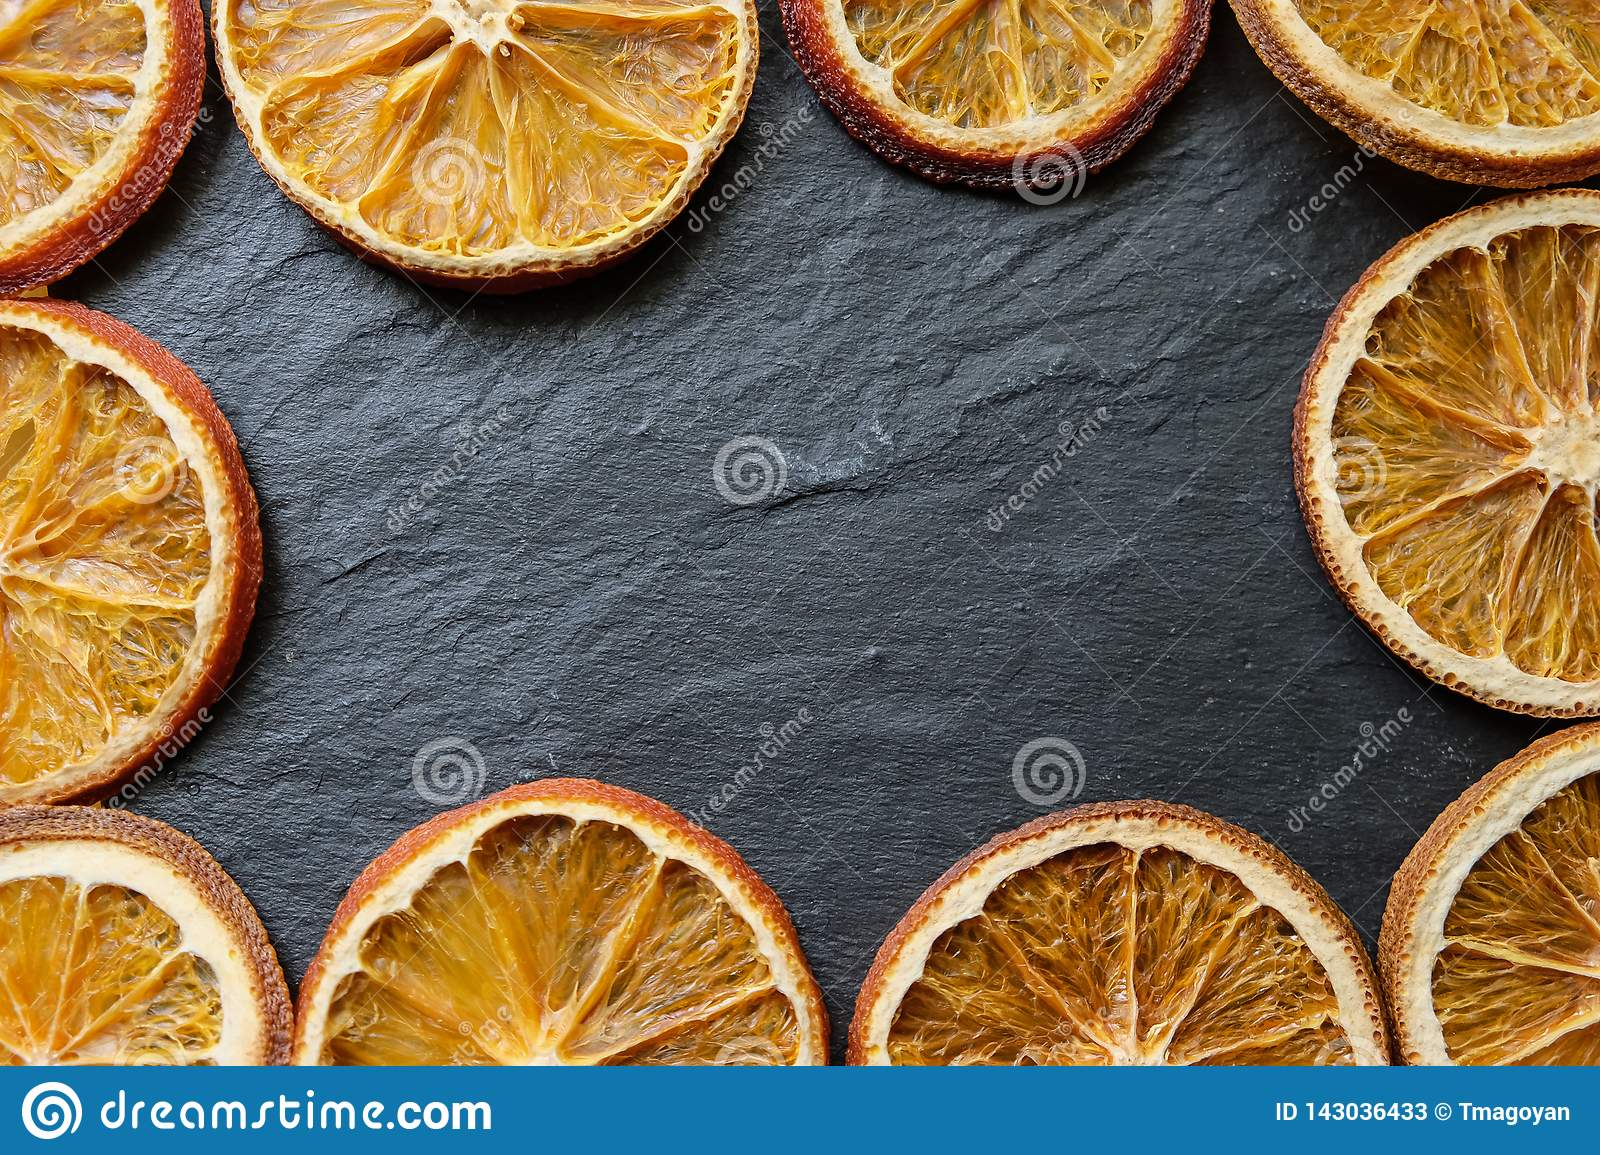 Bright dried orange slices on a stone textured background, copy space, flat lay, top view